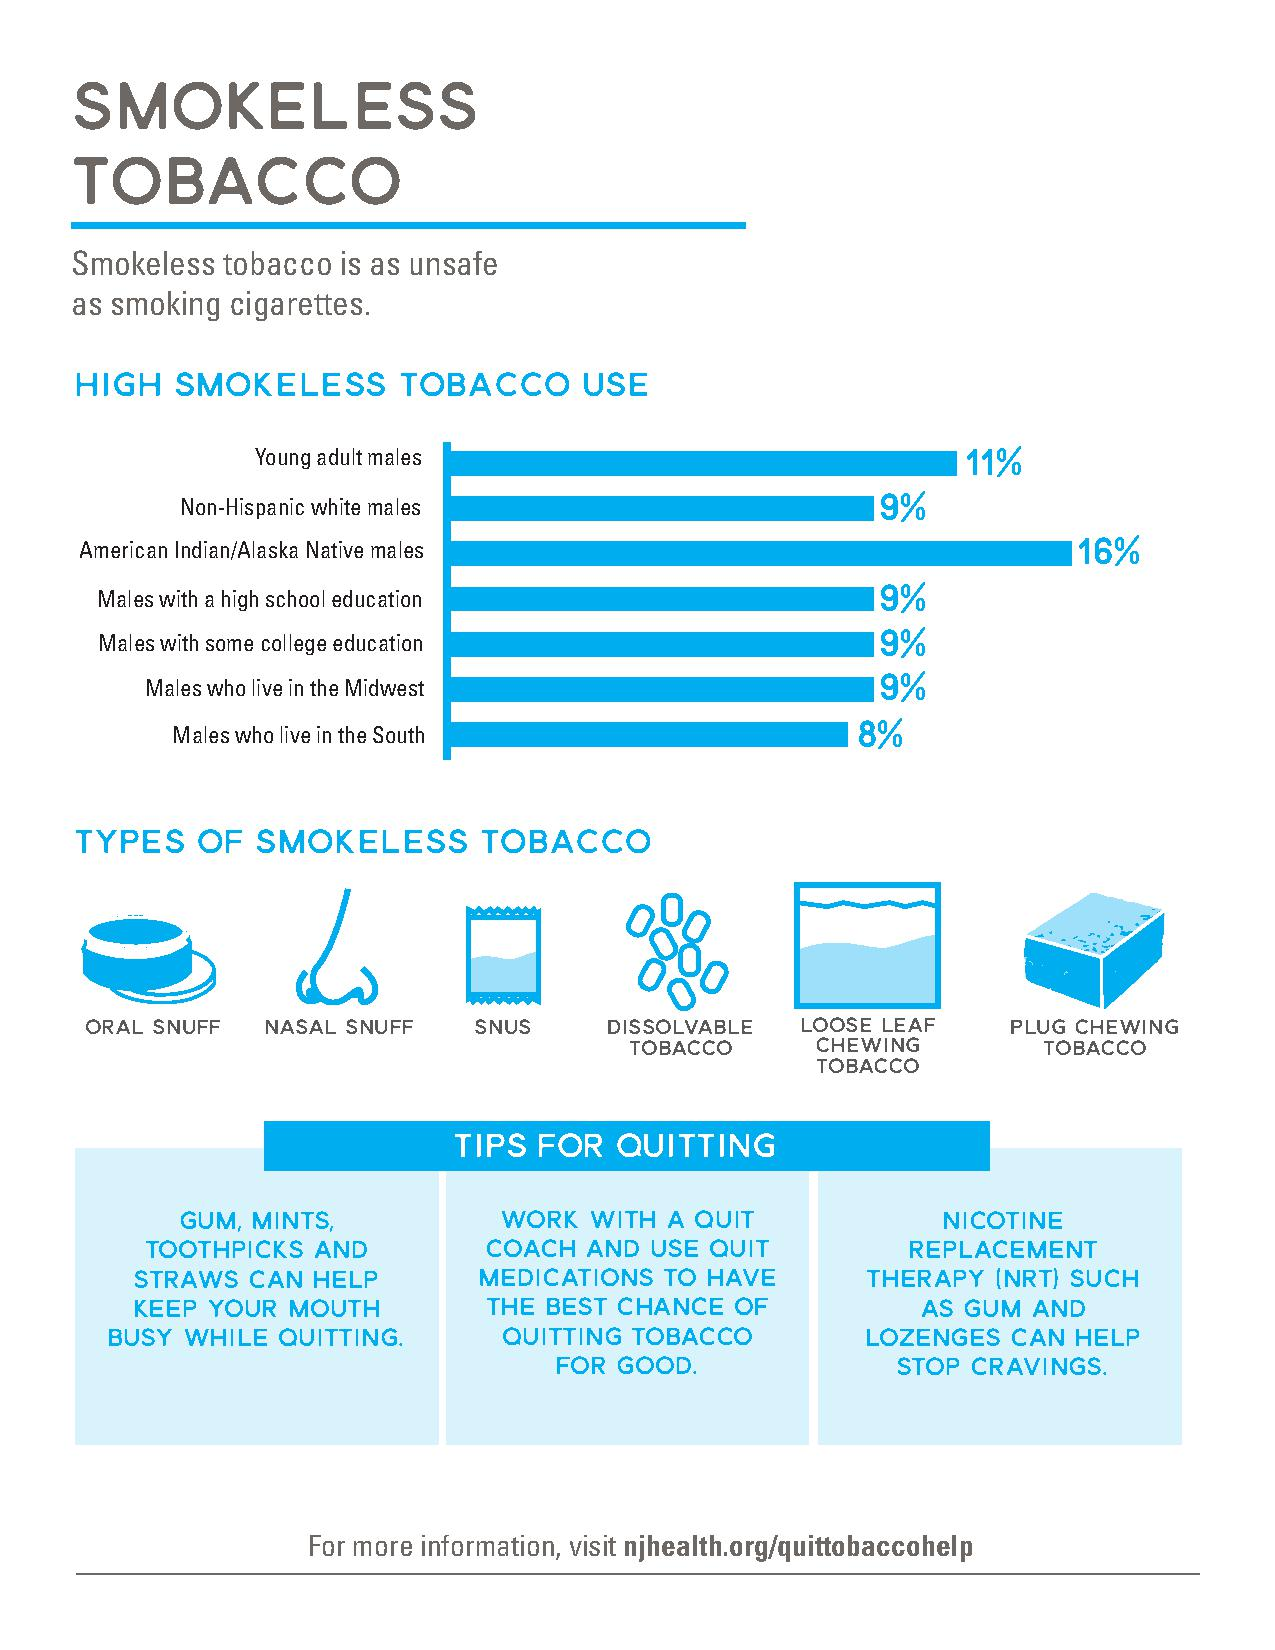 Smokeless Tobacco use concerns